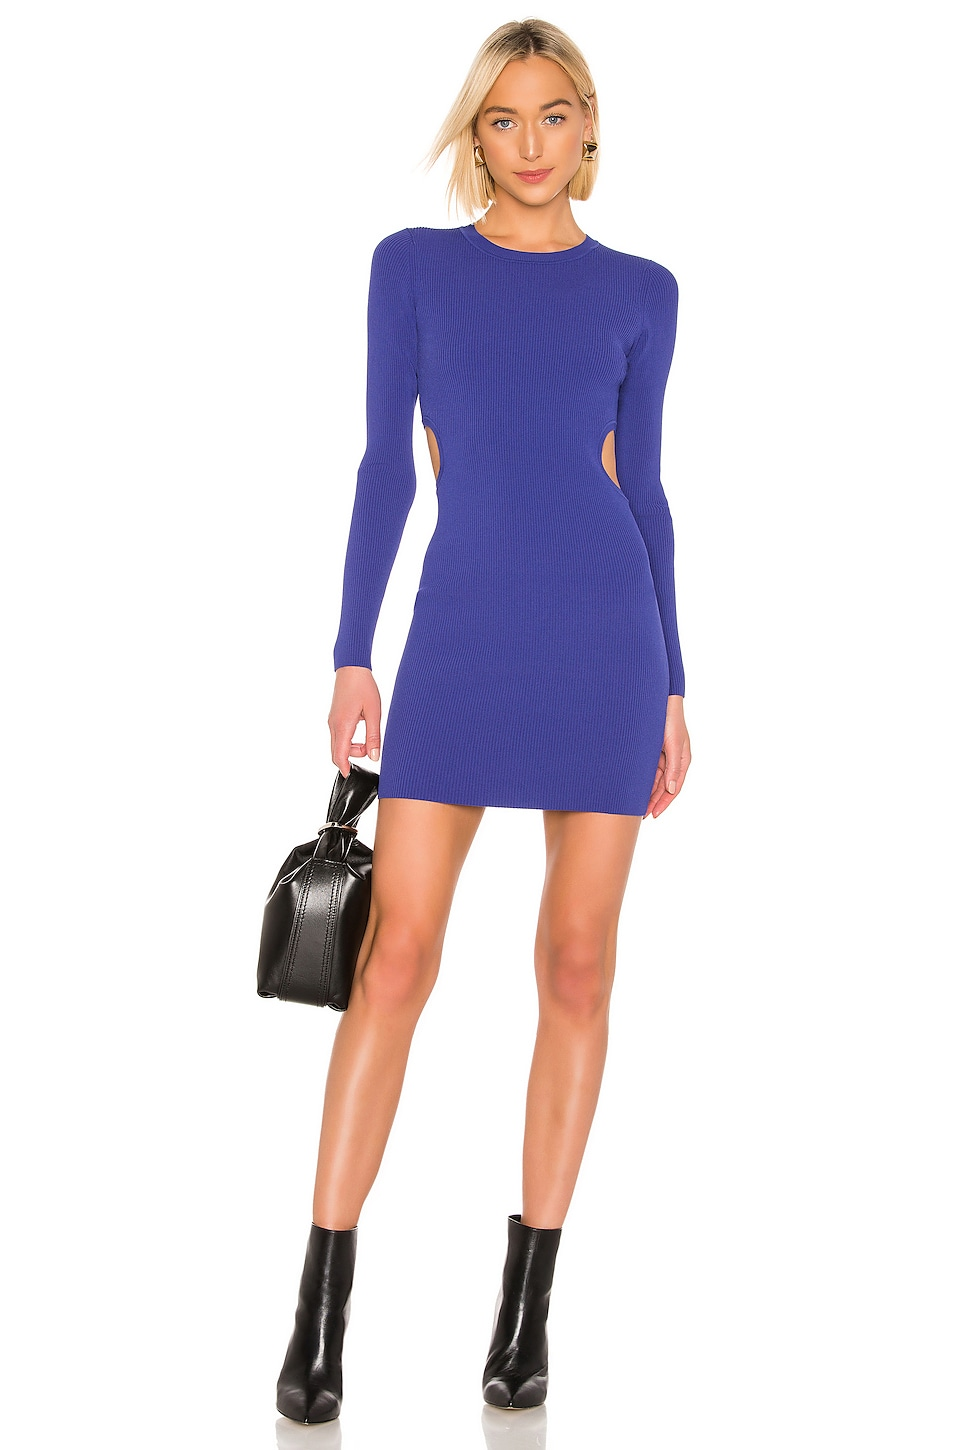 T By Alexander Wang Dresses T BY ALEXANDER WANG BODYCON LONG SLEEVE DRESS IN BLUE.